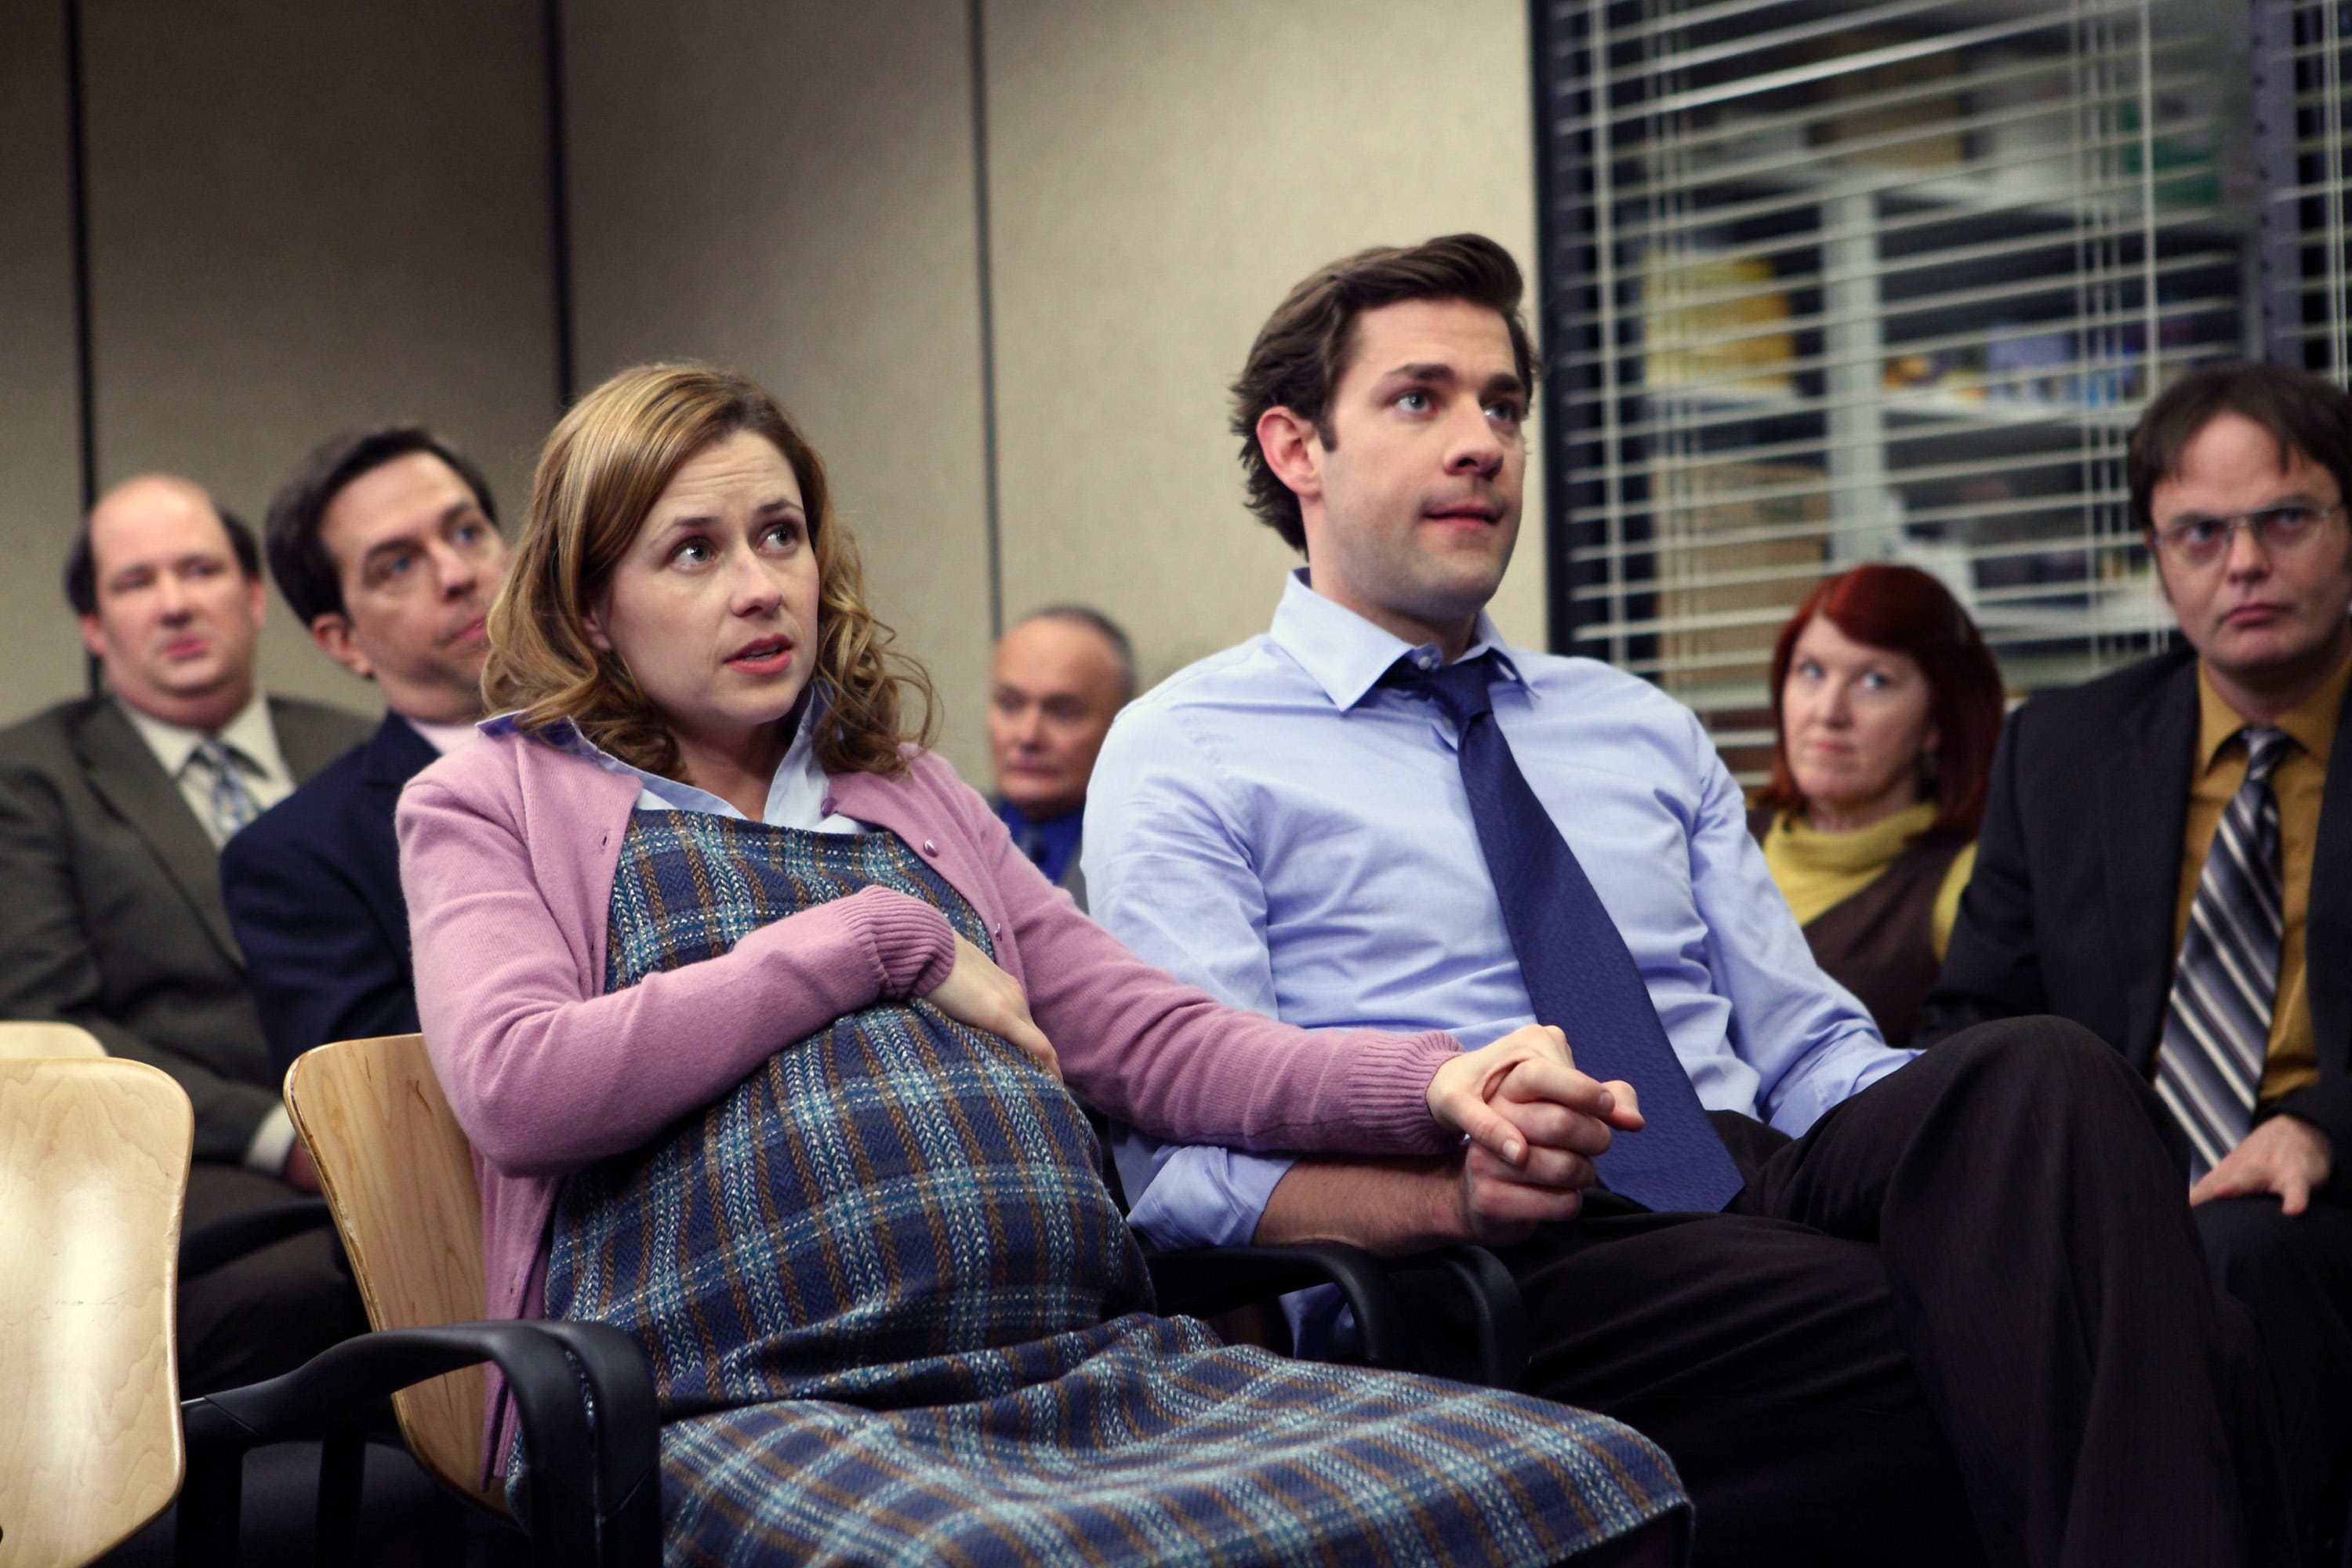 Aww! The best TV couples of all time, from 'The Office' to 'Walking Dead'